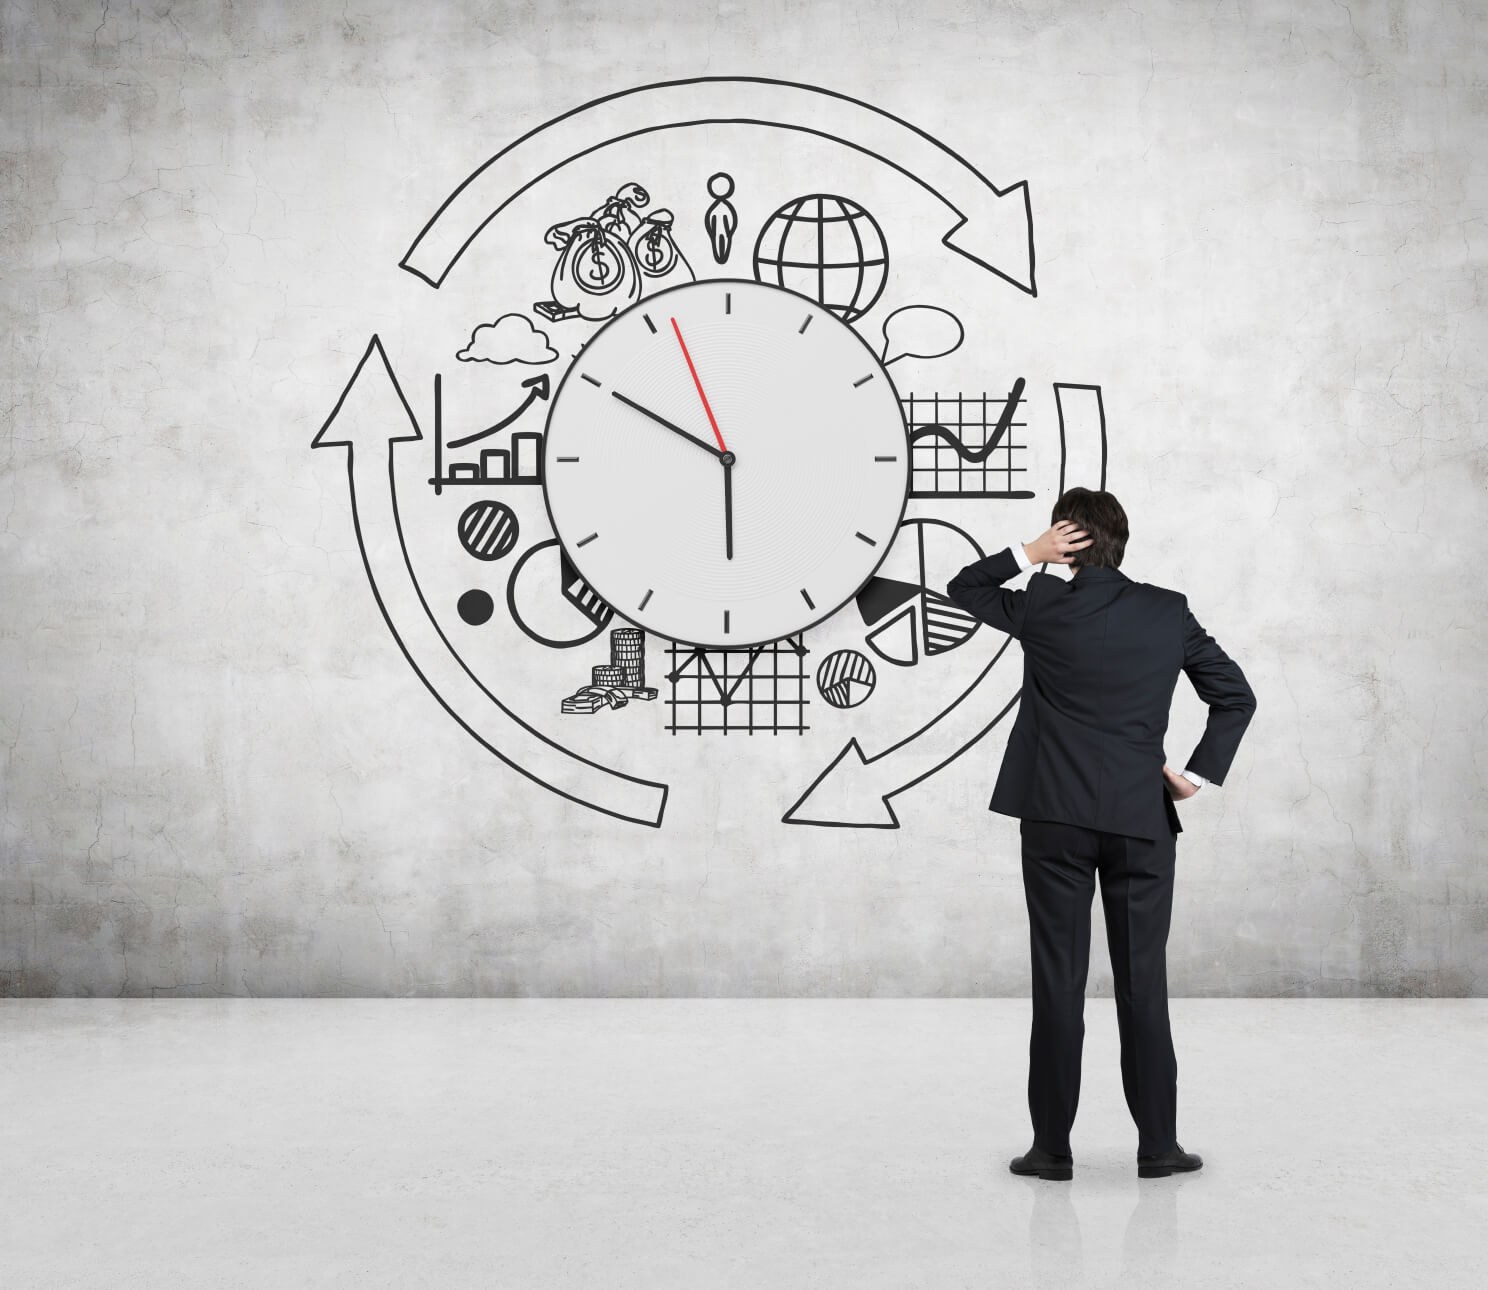 an effective time managemnet 4 effective time management skills to defend your goals jul 12, 17 07:10 am here are 4 effective time management skills to work smarter in the right direction - the direction of your highest priorities.